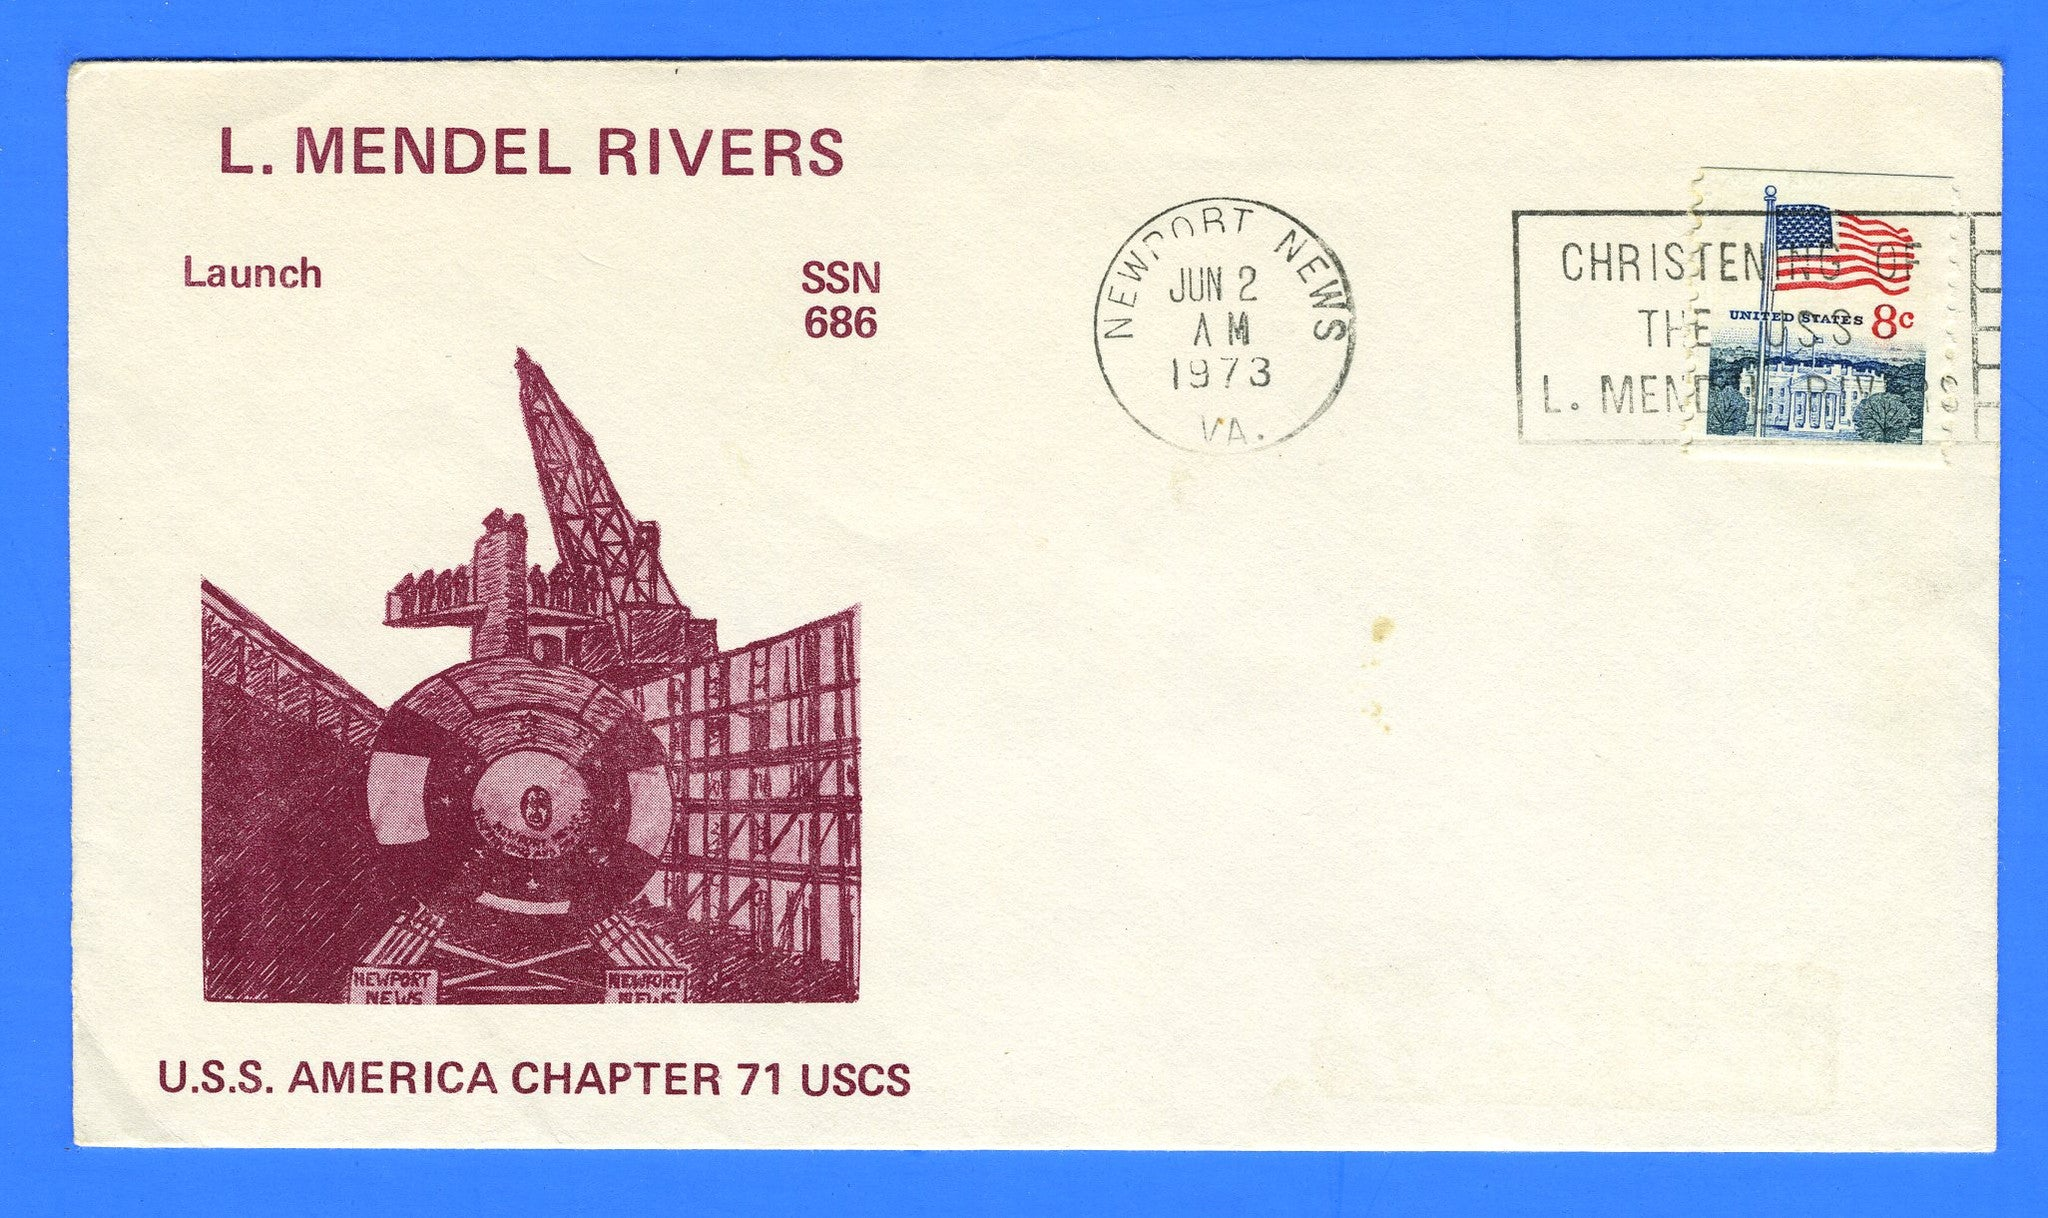 USS L. Mendel Rivers SSN-686 Launched June 2, 1973 - Cachet Maker USCS Chapter 71 USS America